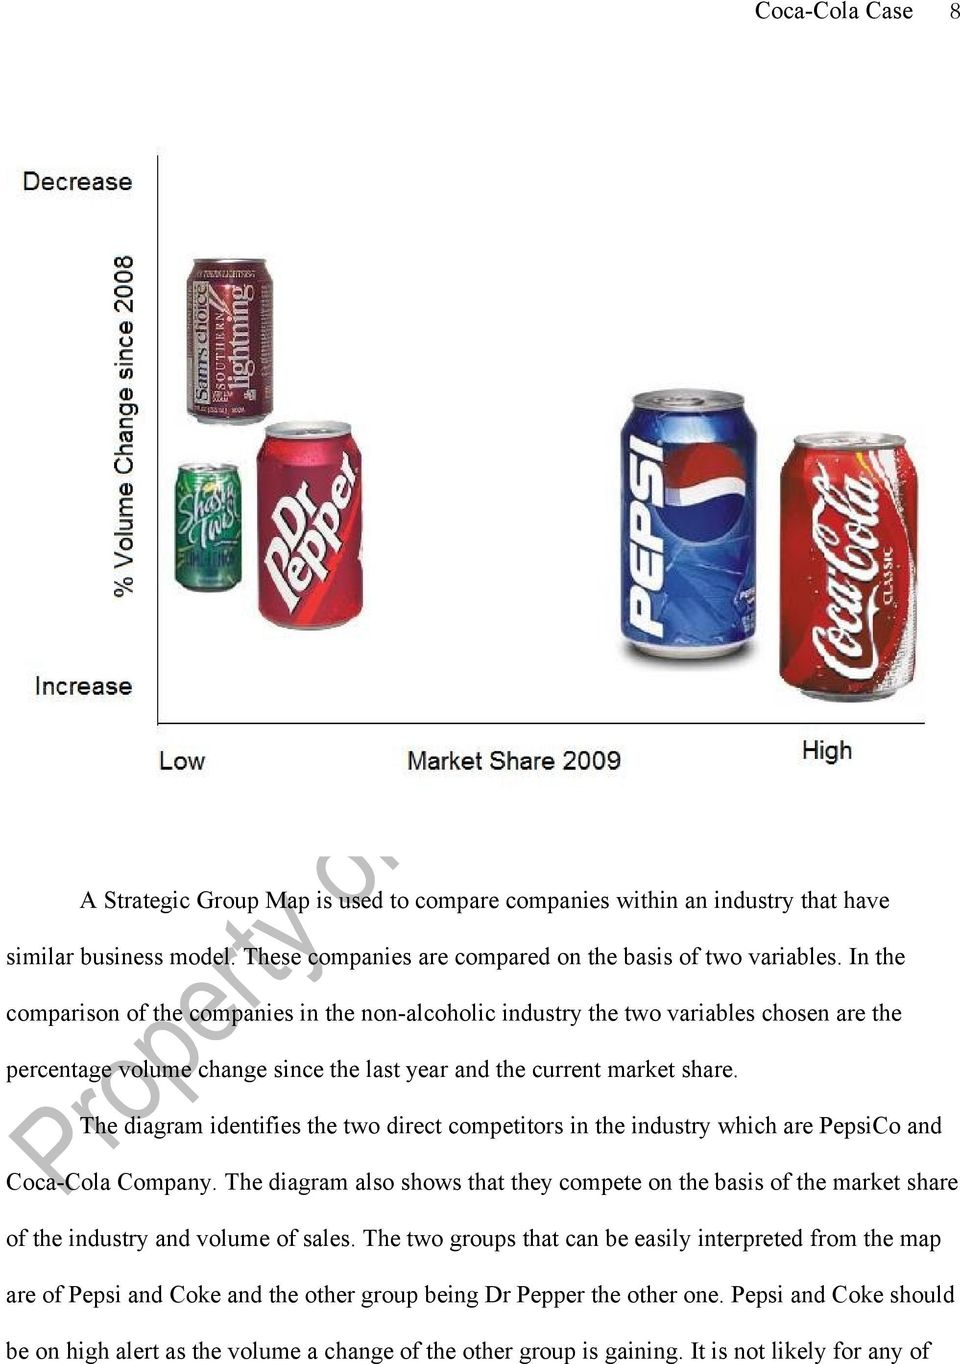 The diagram identifies the two direct competitors in the industry which are PepsiCo and Coca-Cola Company.